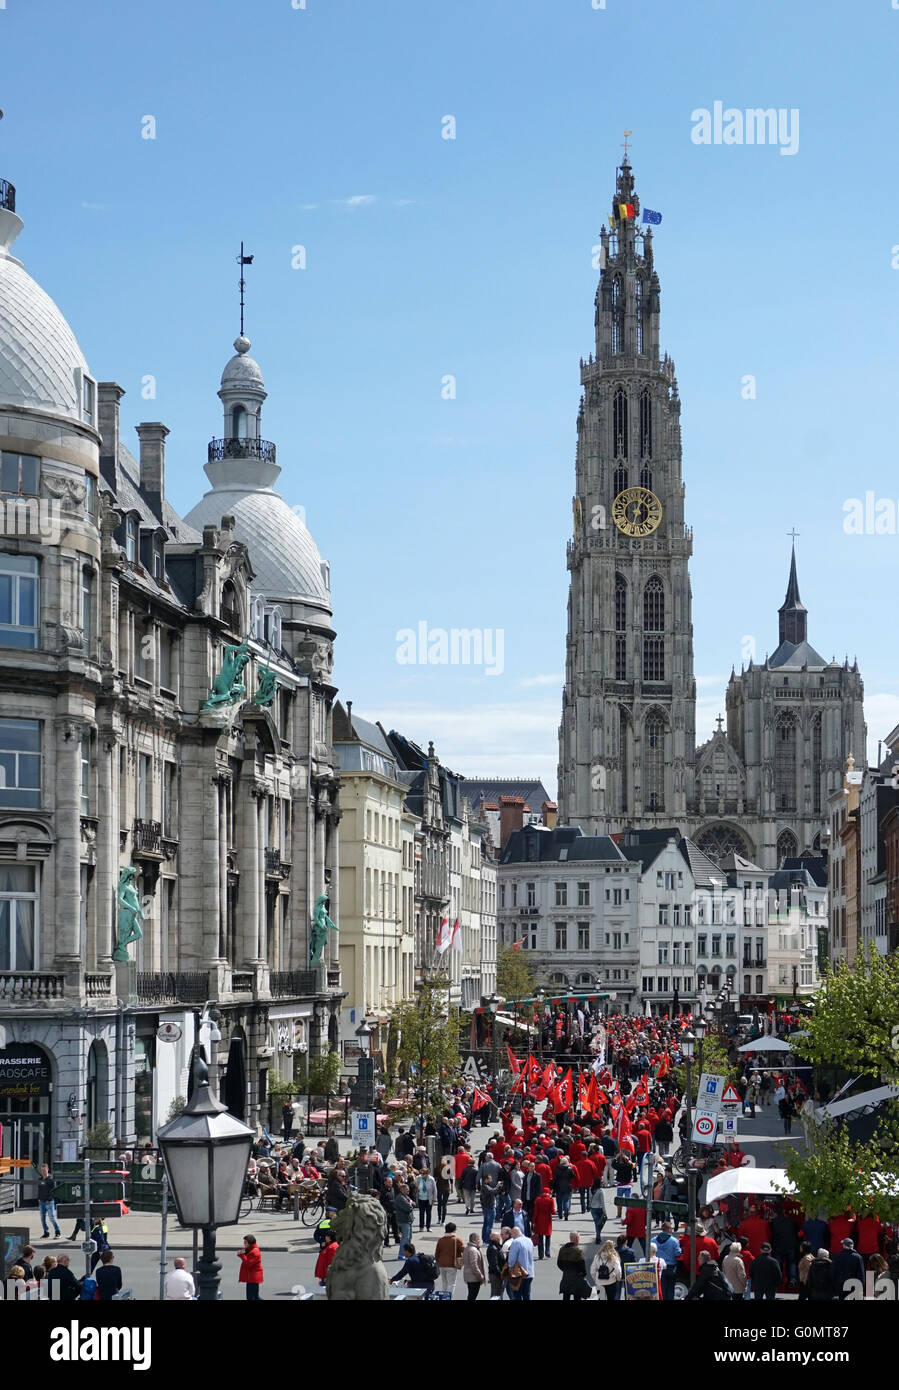 Labor day Labour Day international Workers' Day 1 May Antwerp Belgium - Stock Image